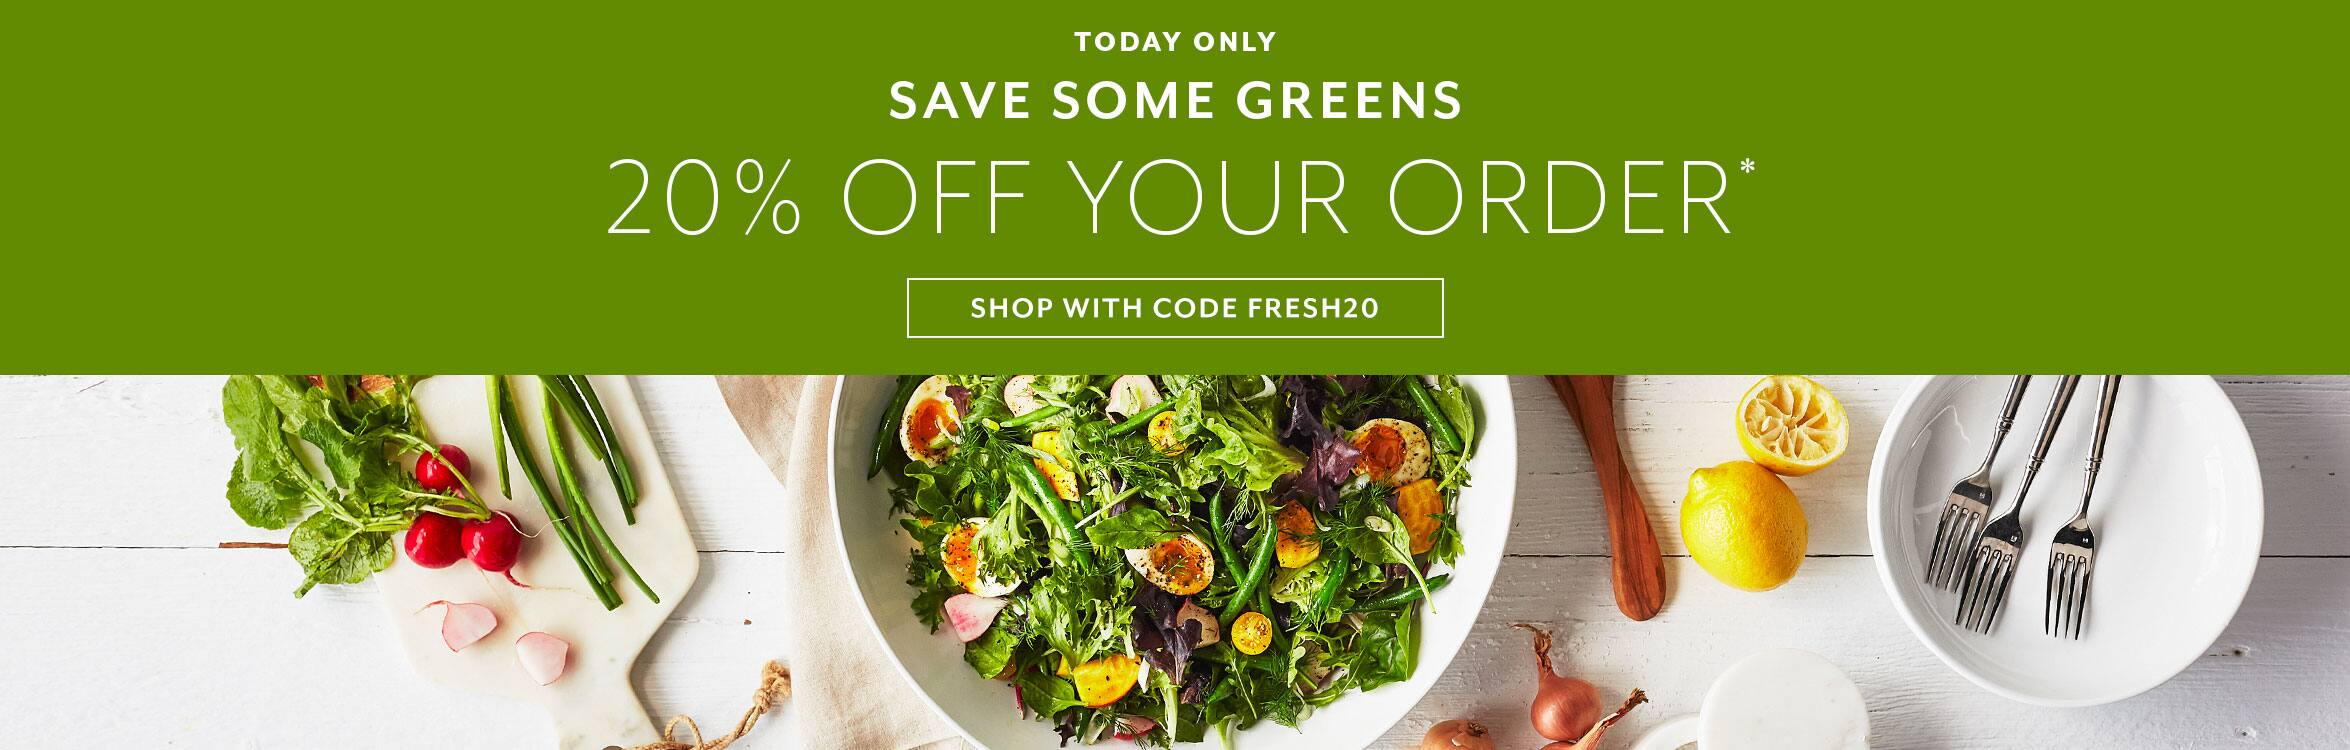 20% off Order at Sur La Table with FRESH20 - 2/18/20